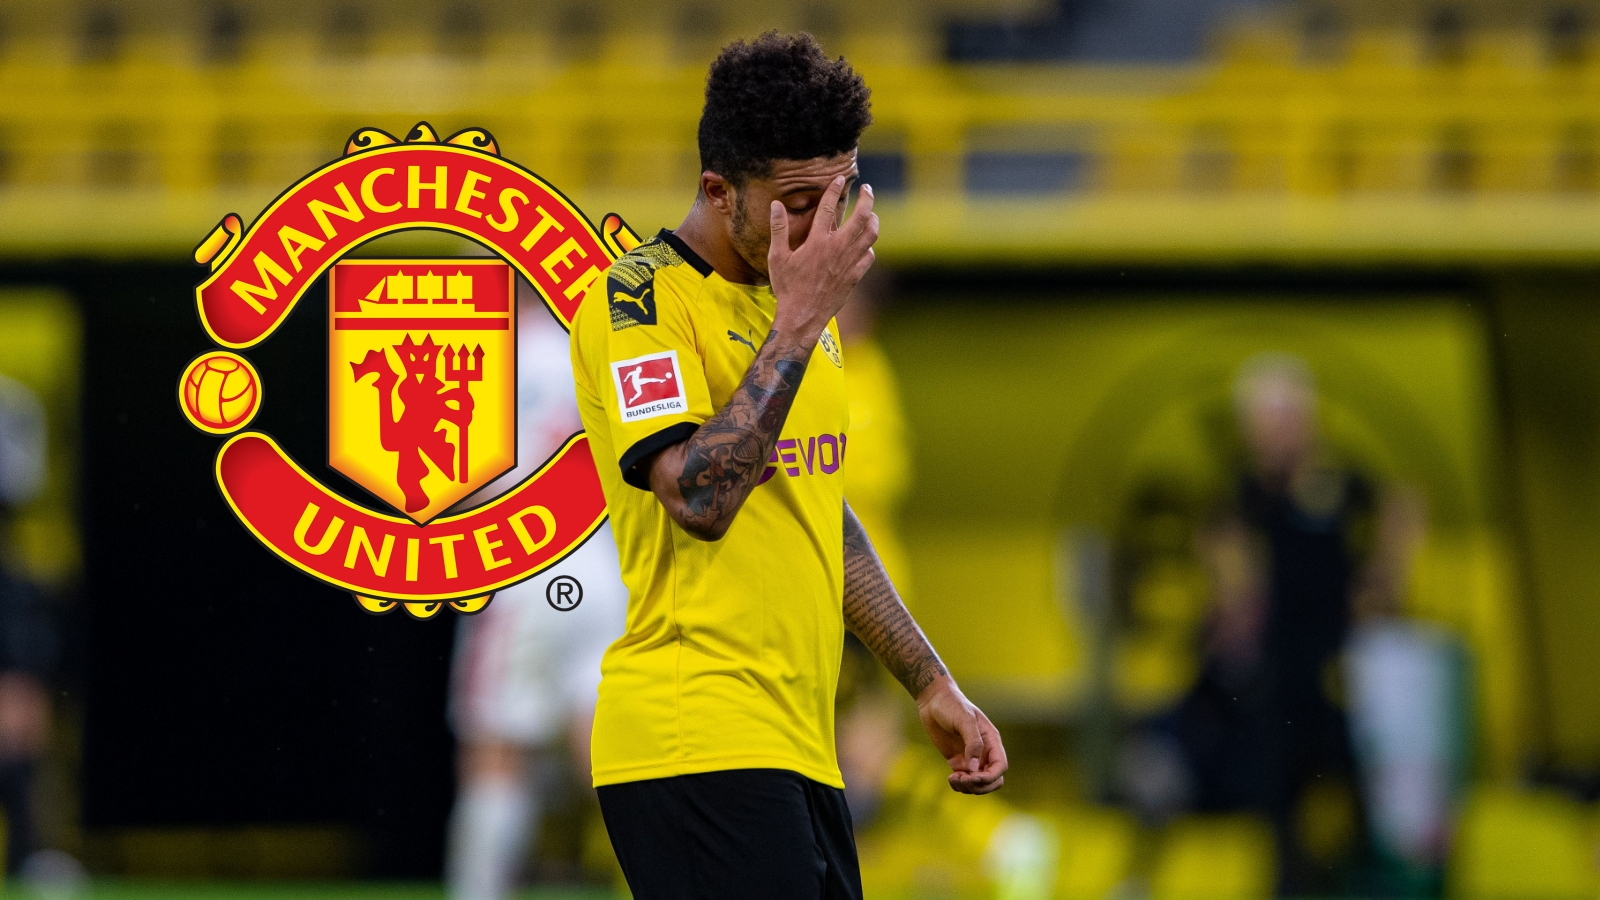 Manchester United Put All Their Eggs In Sancho Basket Red Devils Accused Of Reactionary Recruitment By Chadwick Goal Com Worldnewsera